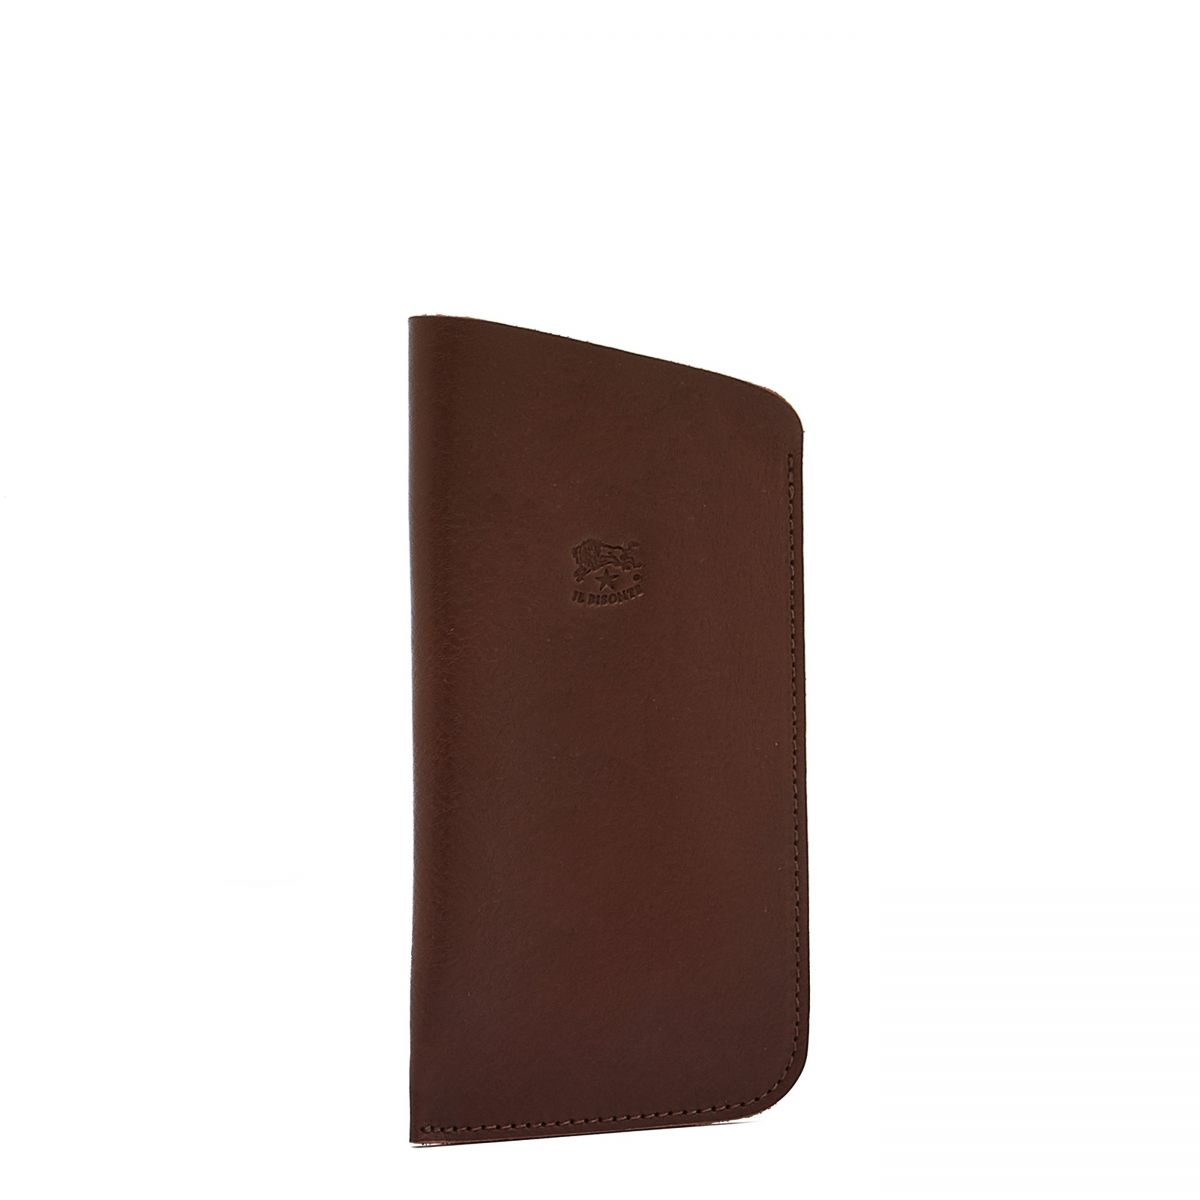 Case  in Cowhide Double Leather SCA006 color Brown | Details